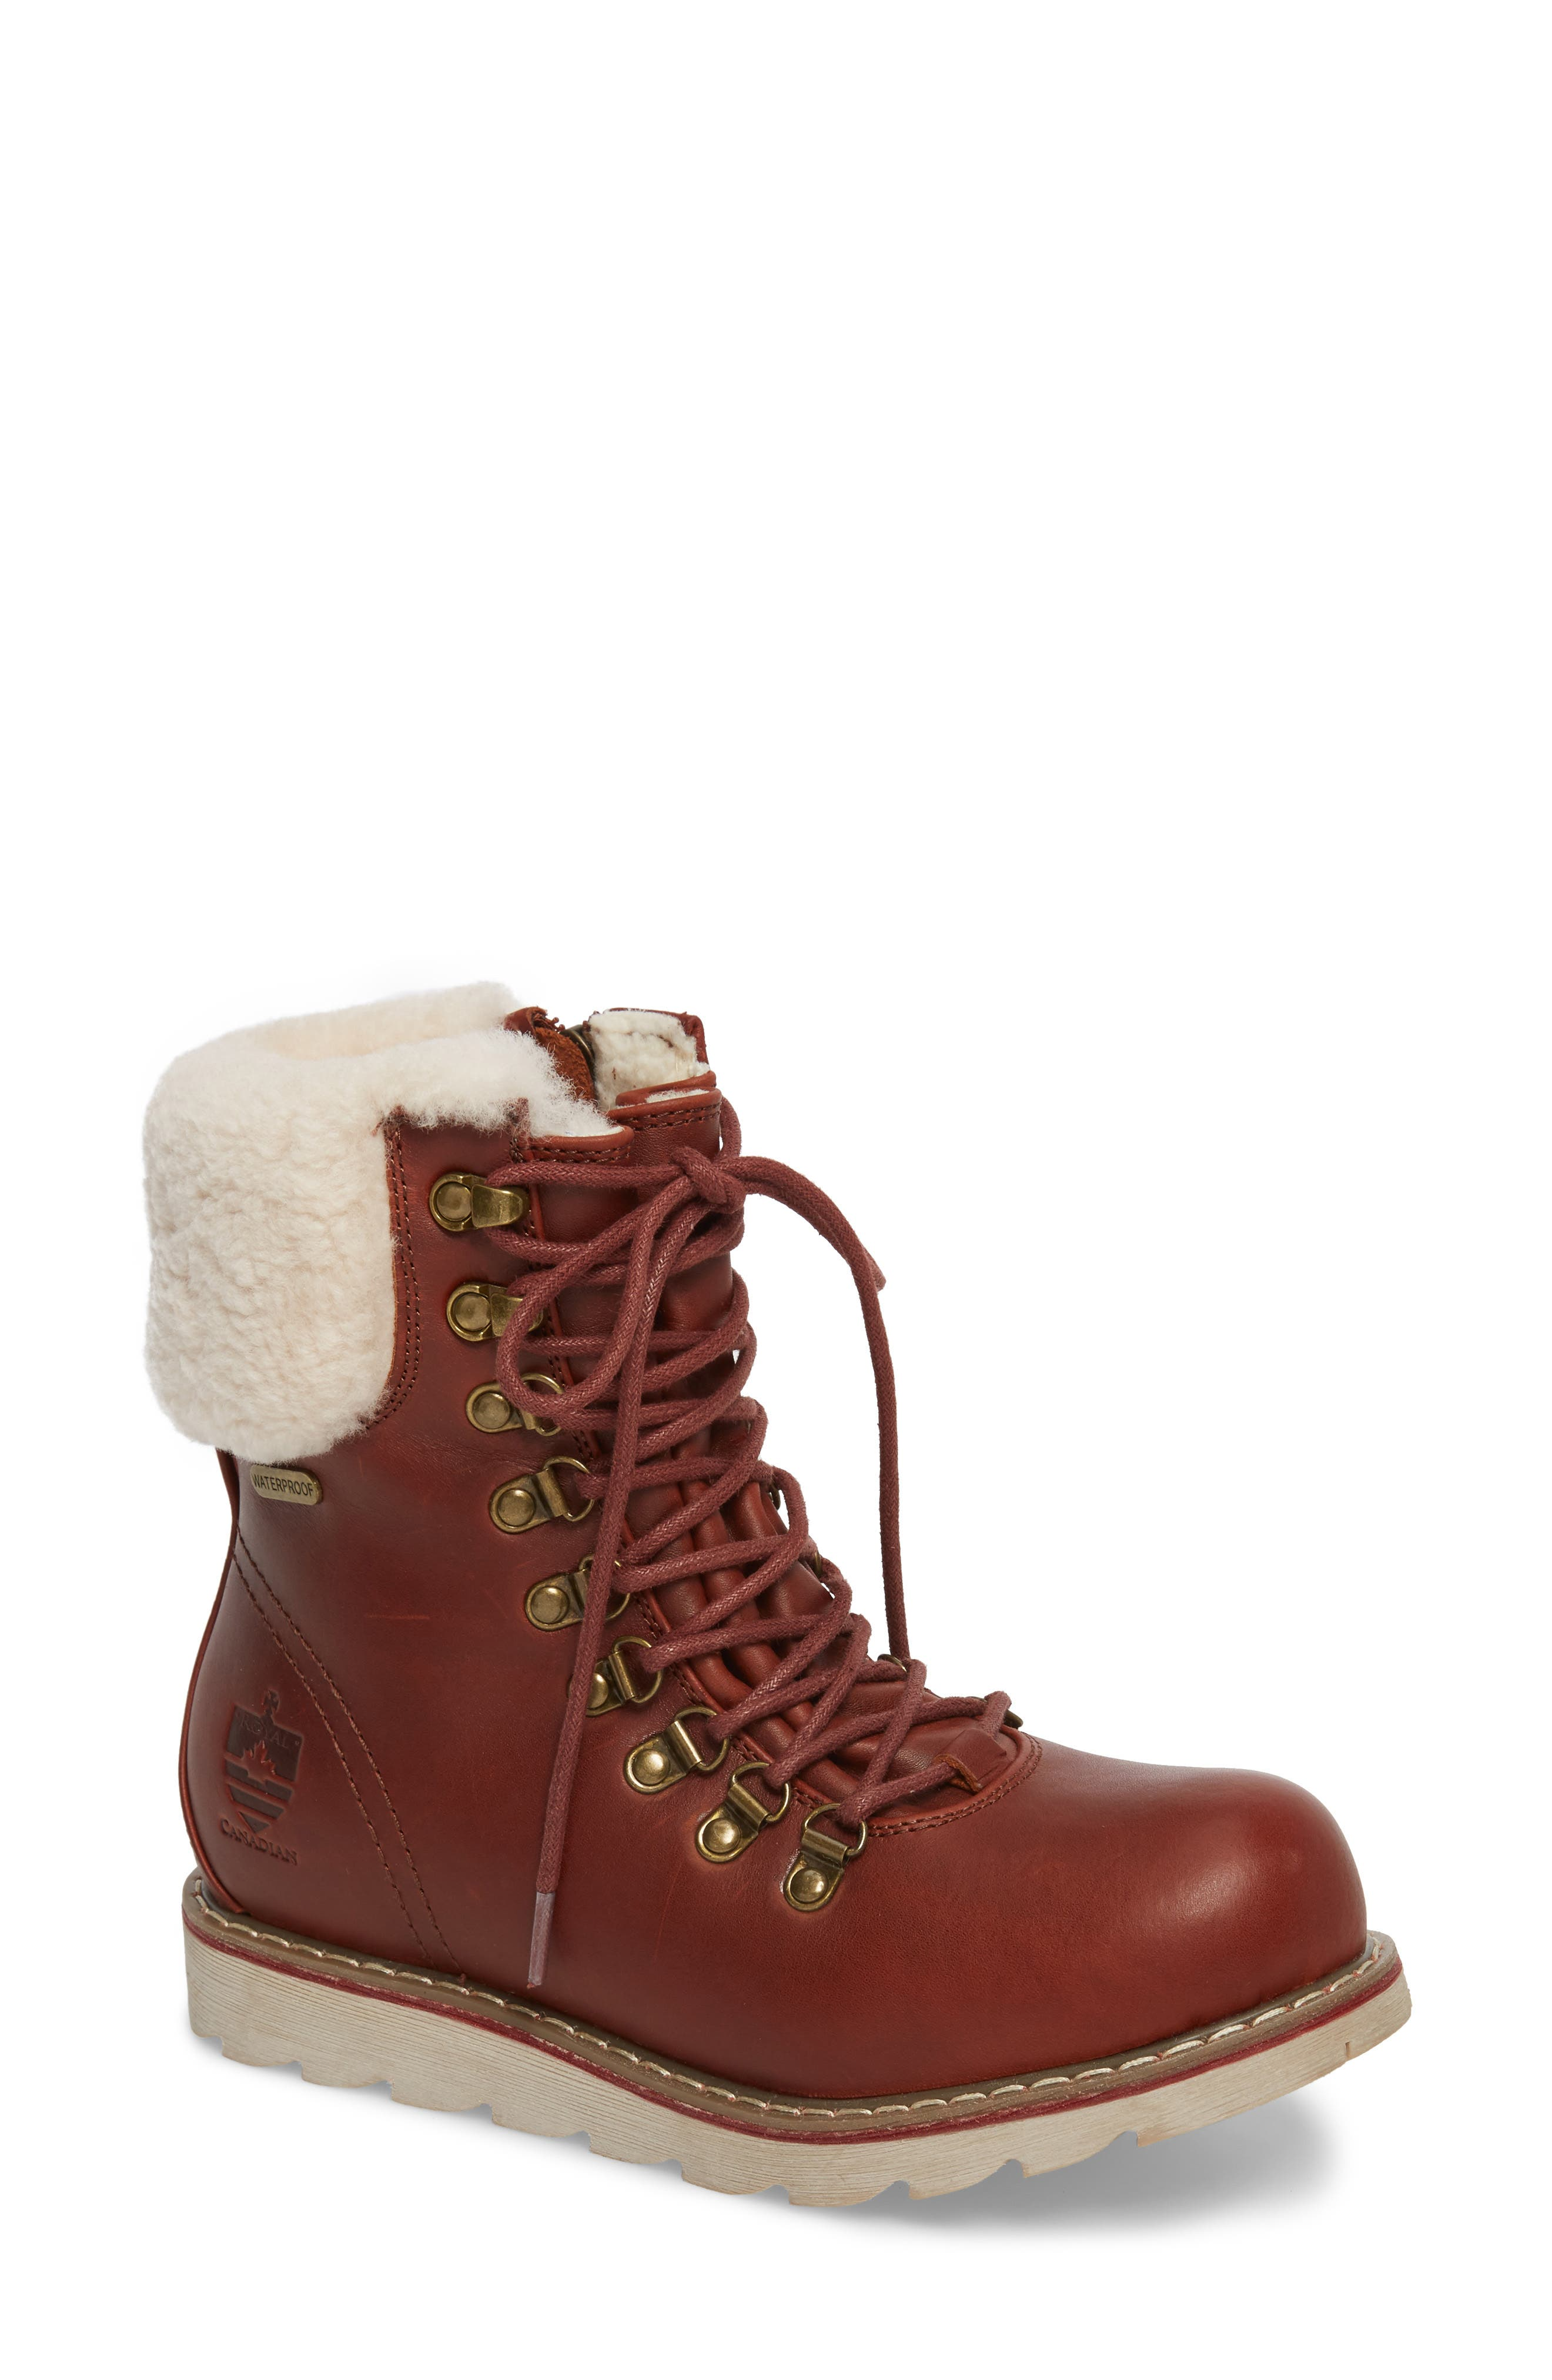 Lethbridge Waterproof Snow Boot with Genuine Shearling Cuff,                             Main thumbnail 3, color,